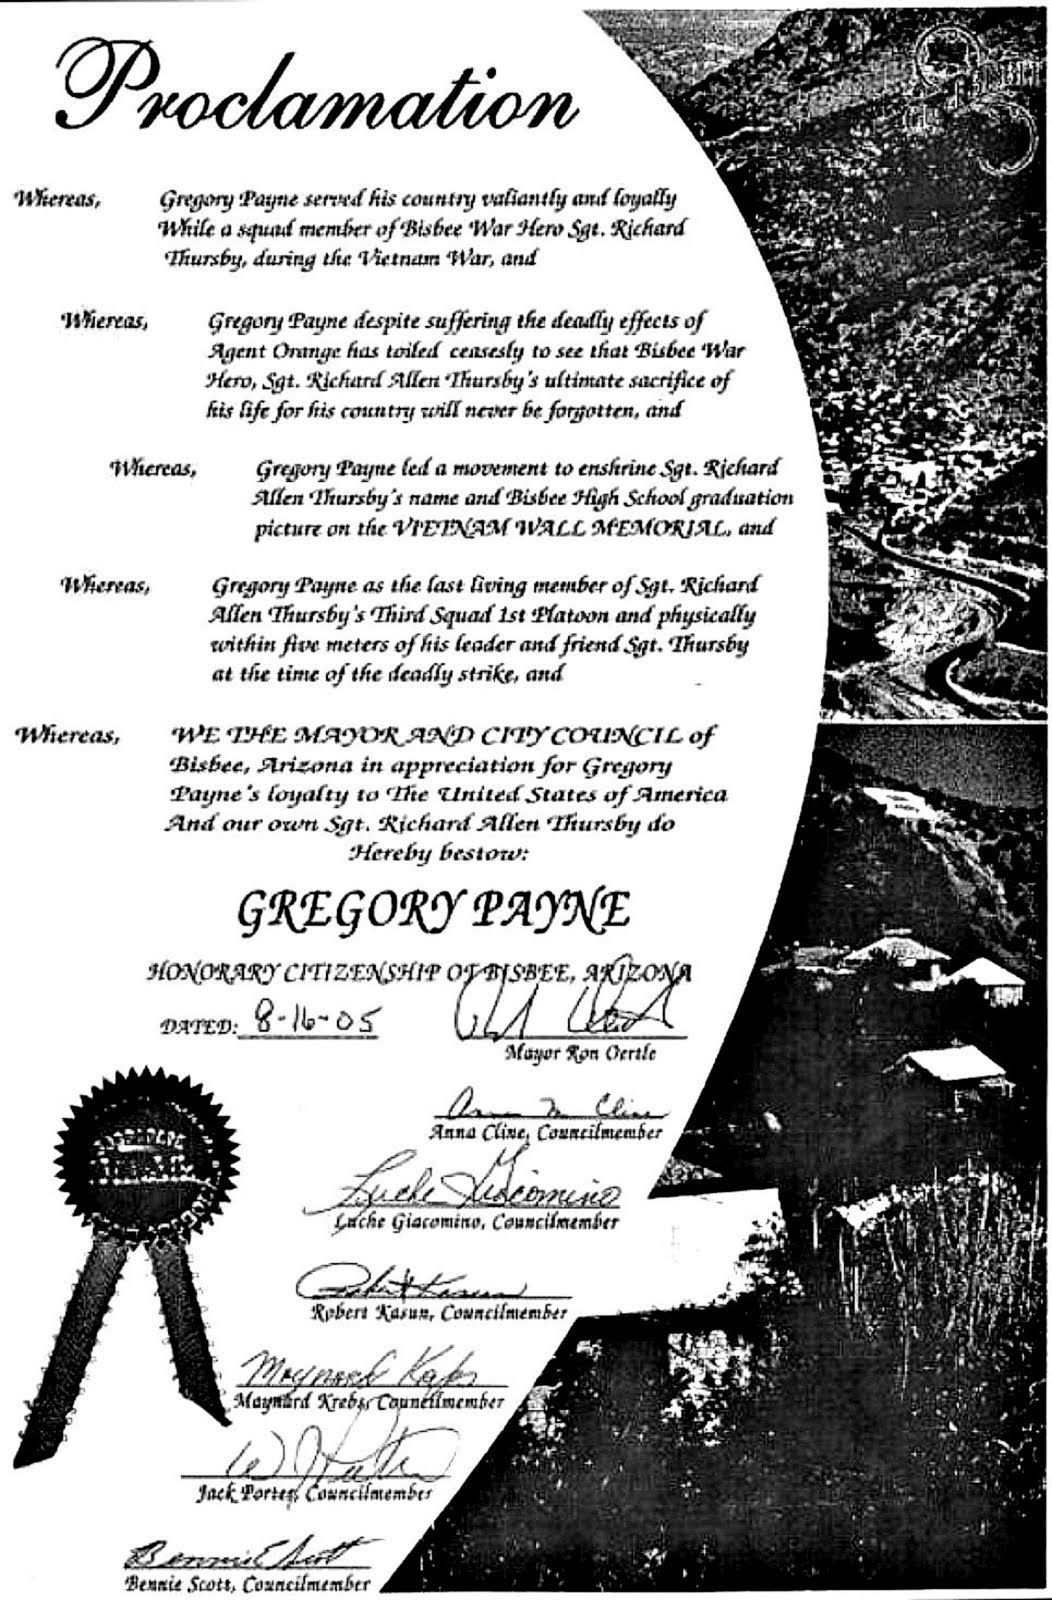 MY BISBEE, AZ  PROCLAMATION - FROM THE BISBEE AZ MEMORIE GROUP AND 7 AZ GOVERNORS.